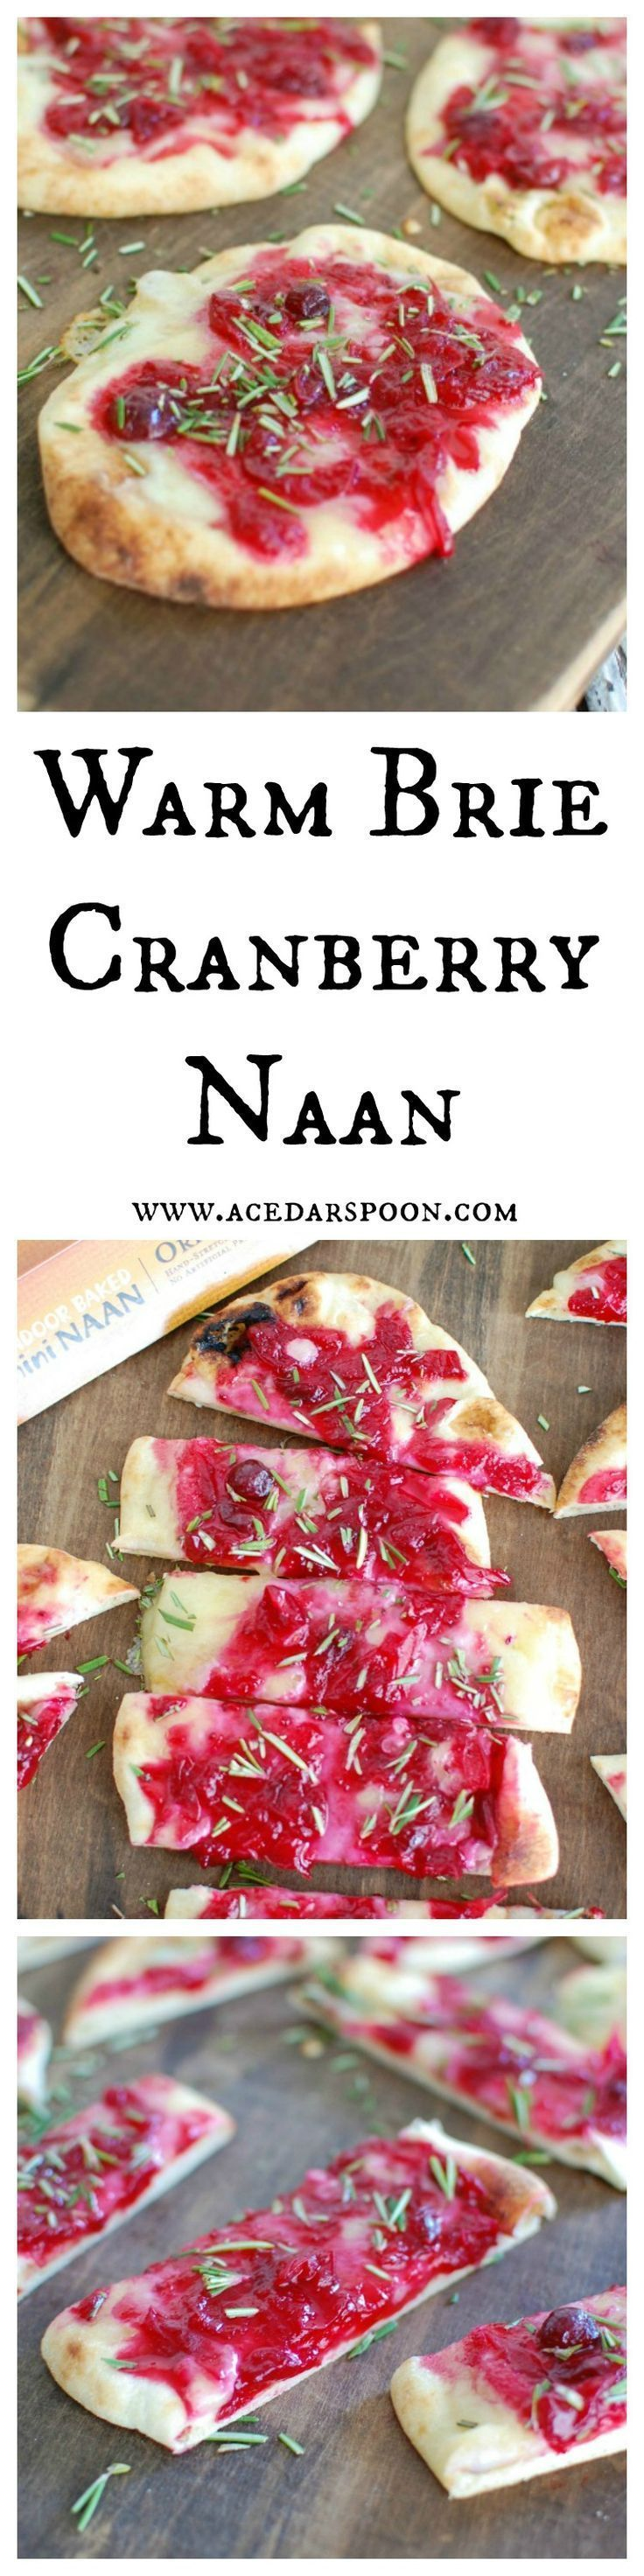 how to make naan bread traditional